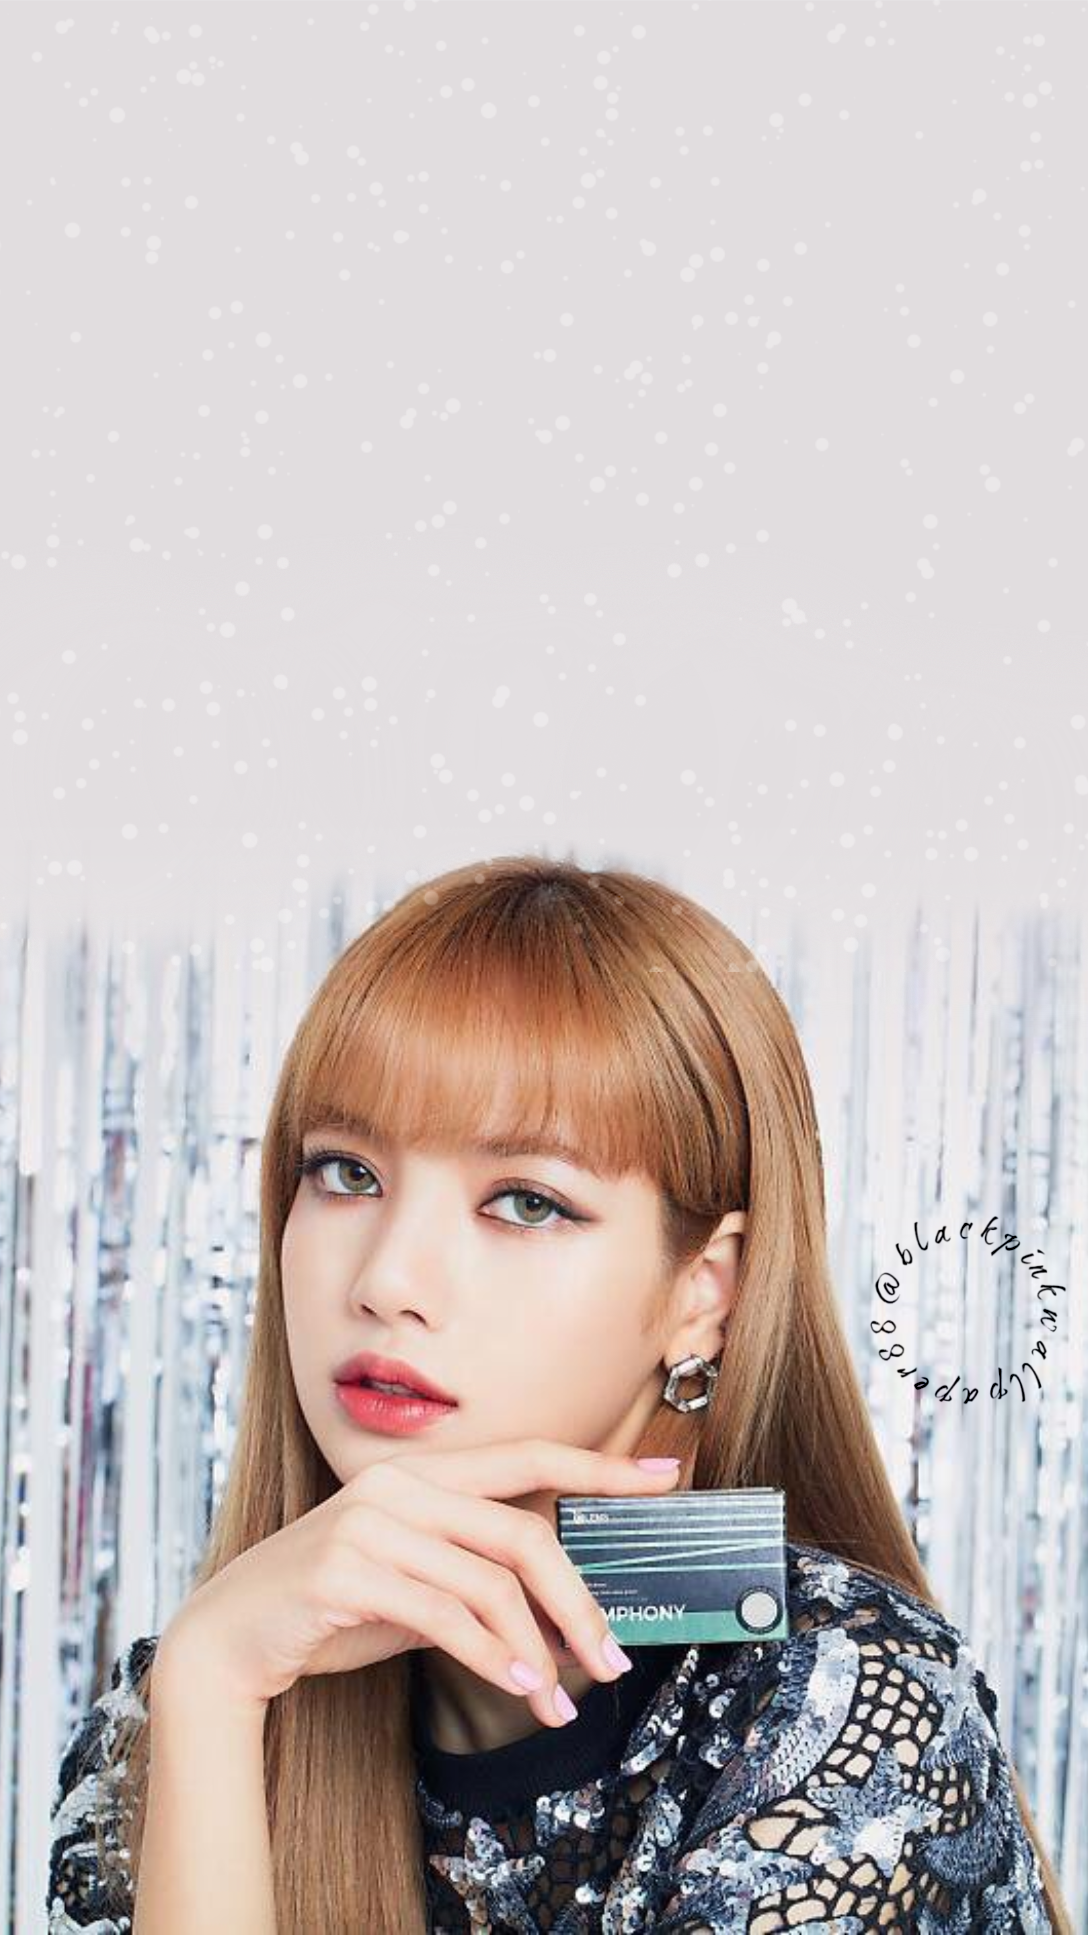 Free Download Lisa Blackpink Wallpaperlockscreen Follow Me On Instagram For 1088x1935 For Your Desktop Mobile Tablet Explore 19 Blackpink Lisa Wallpapers Blackpink Lisa Wallpapers Lisa Blackpink Wallpapers Blackpink Lisa